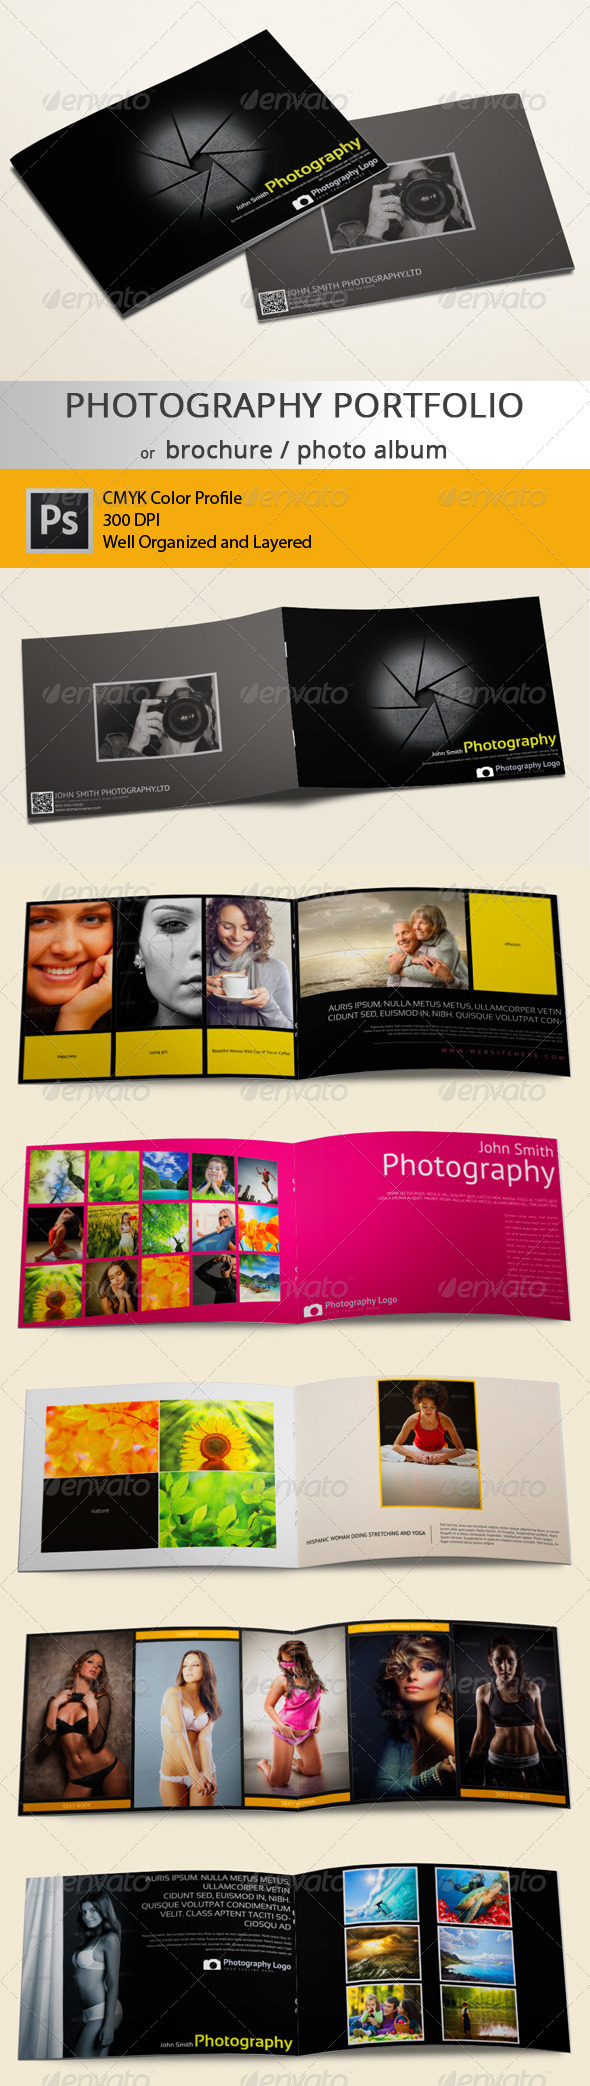 GraphicRiver Photography Portfolio Brochure or Photo Album 6317799